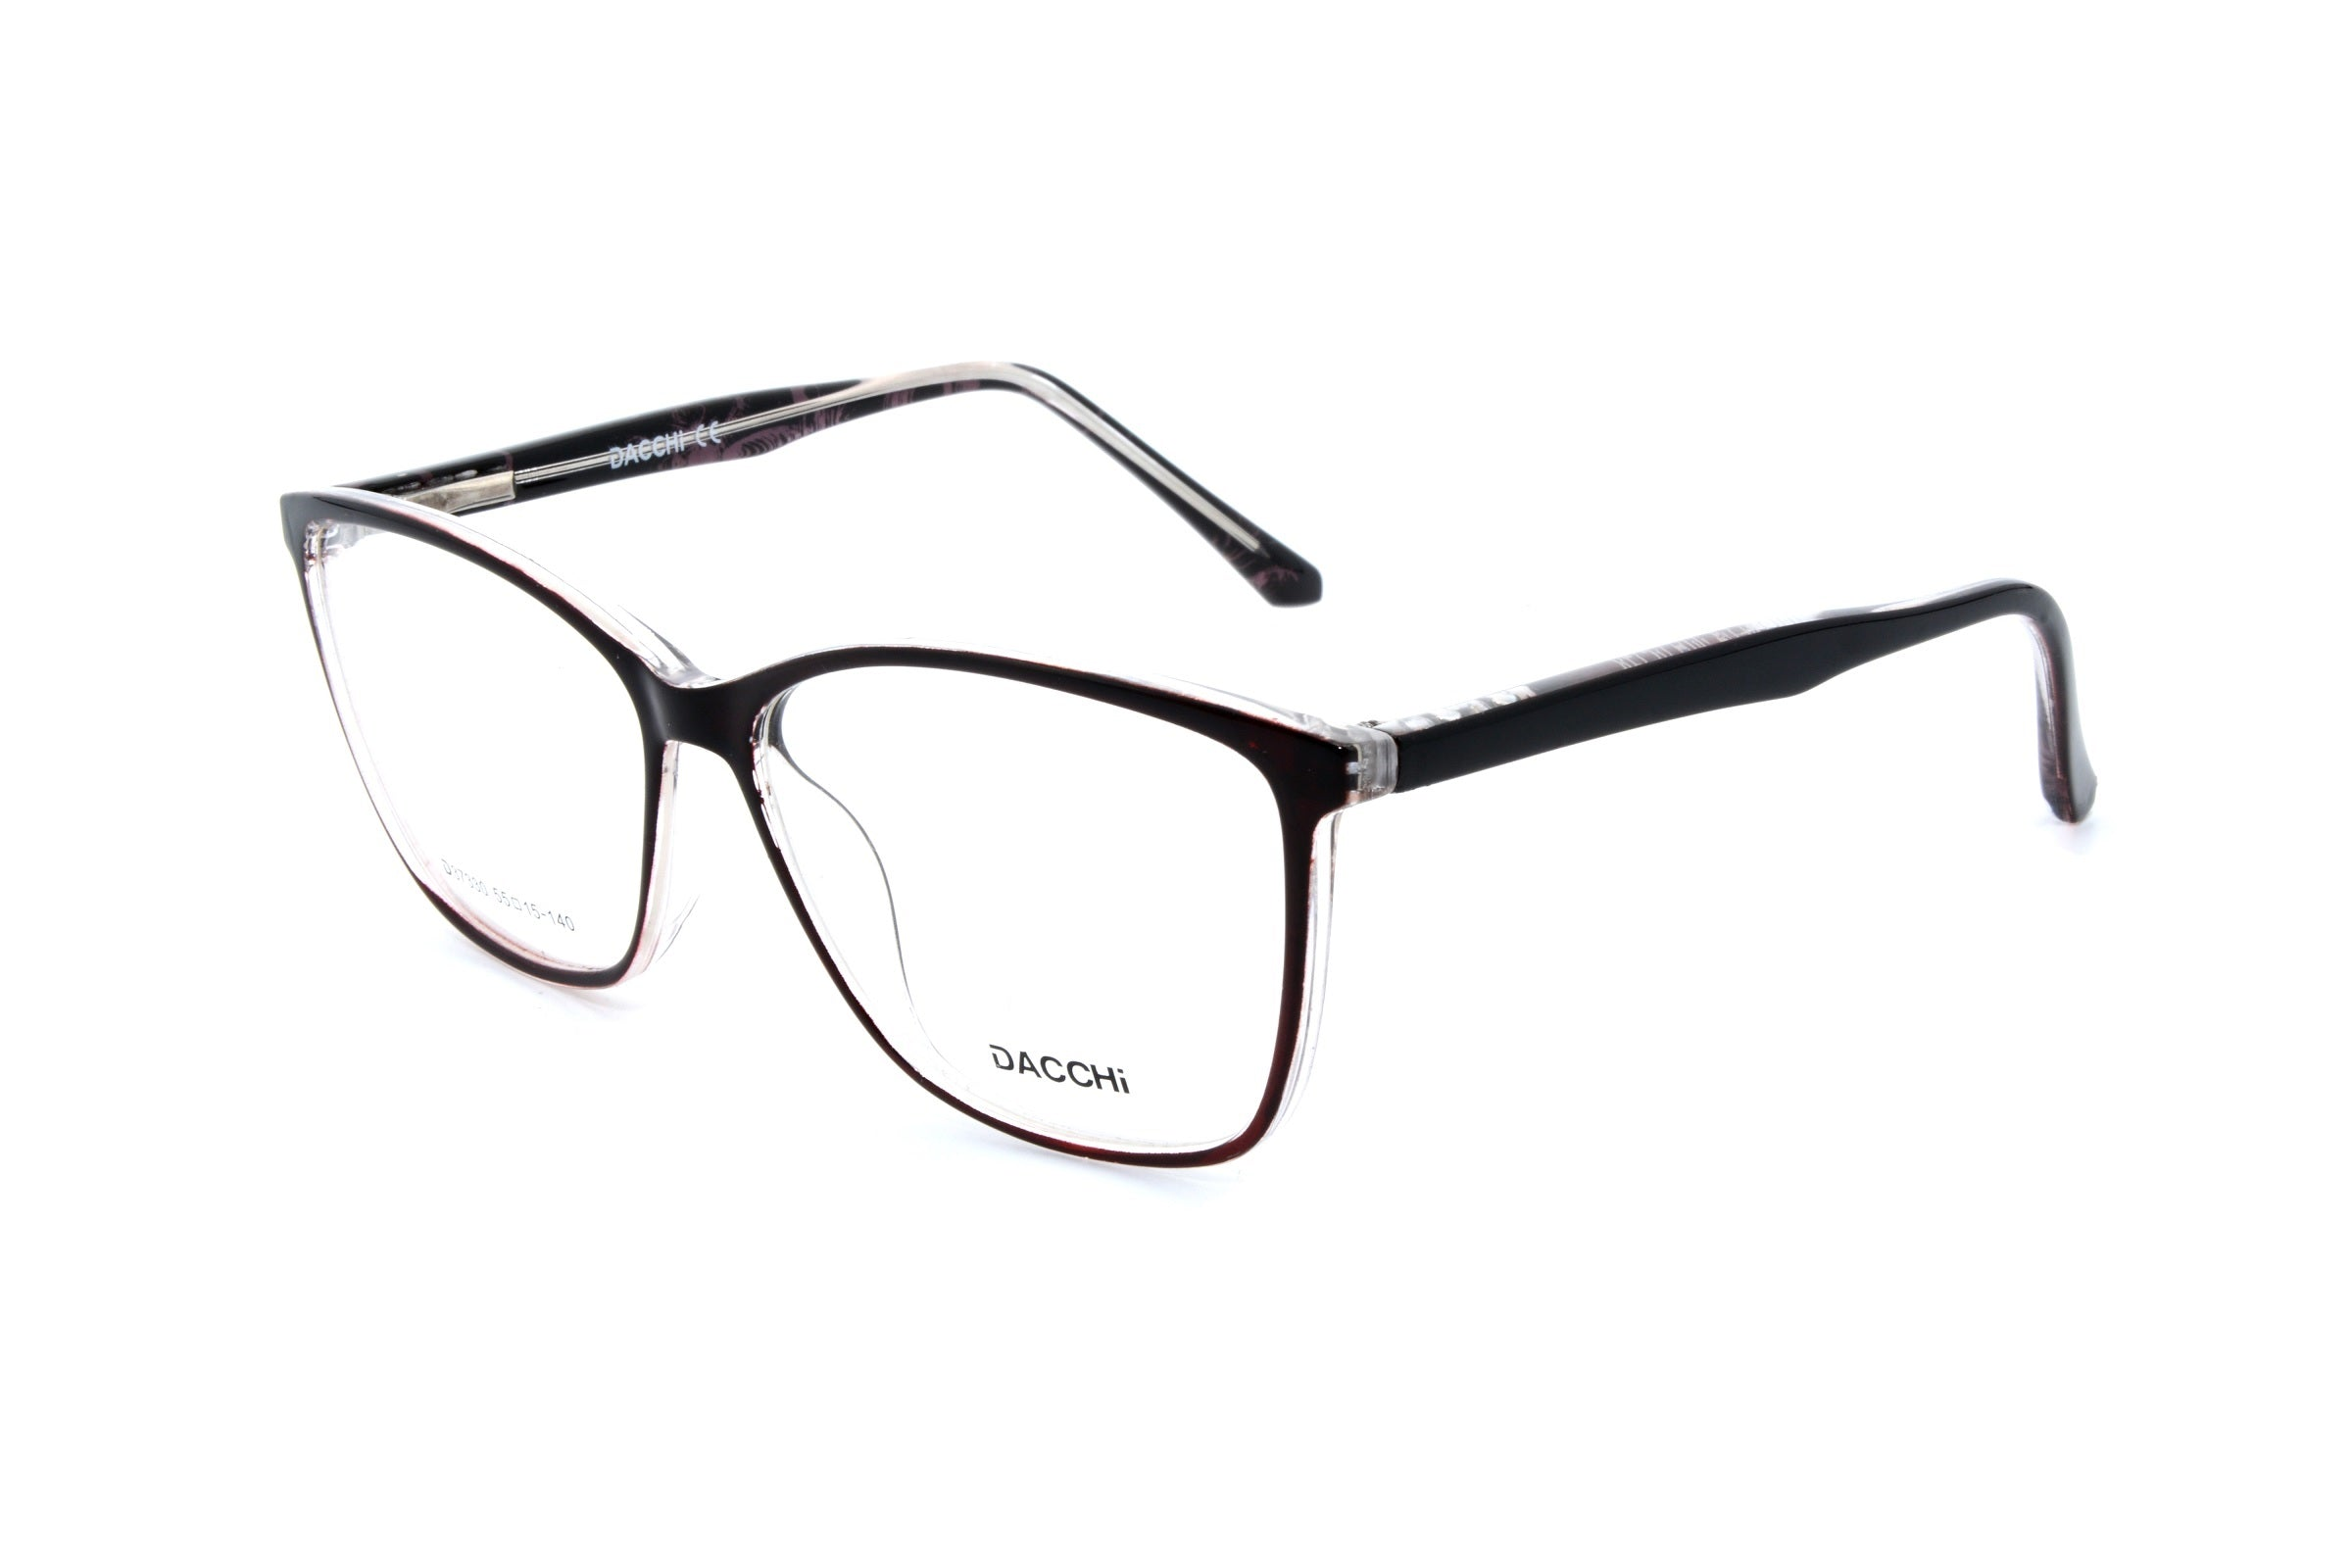 Dacchi eyewear 37330, C4 - Optics Trading